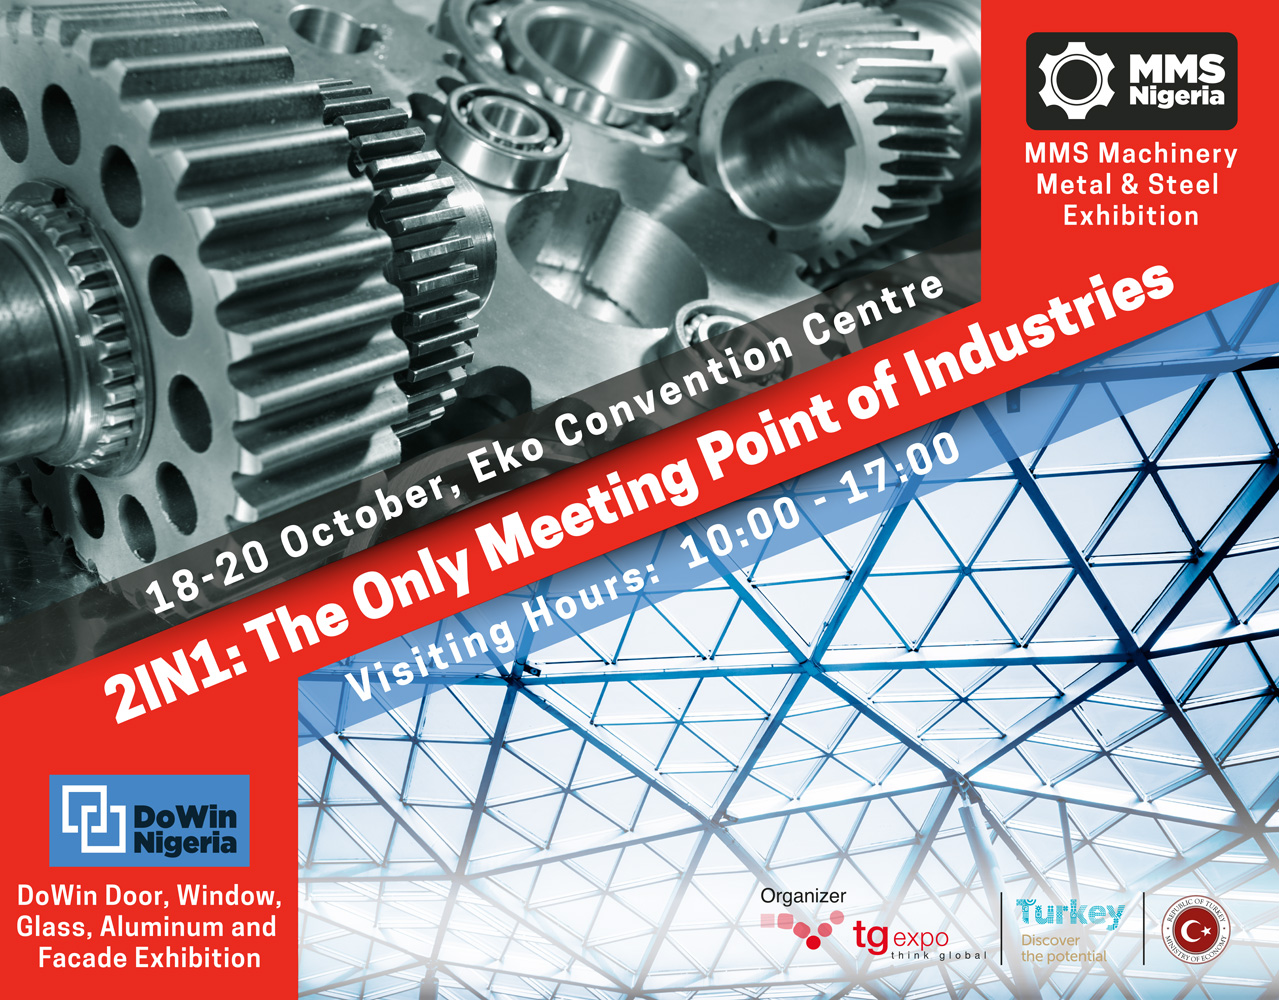 TG Expo To Hold Maiden Edition Of Machinery, Metal And Steel Exhibition In Nigeria